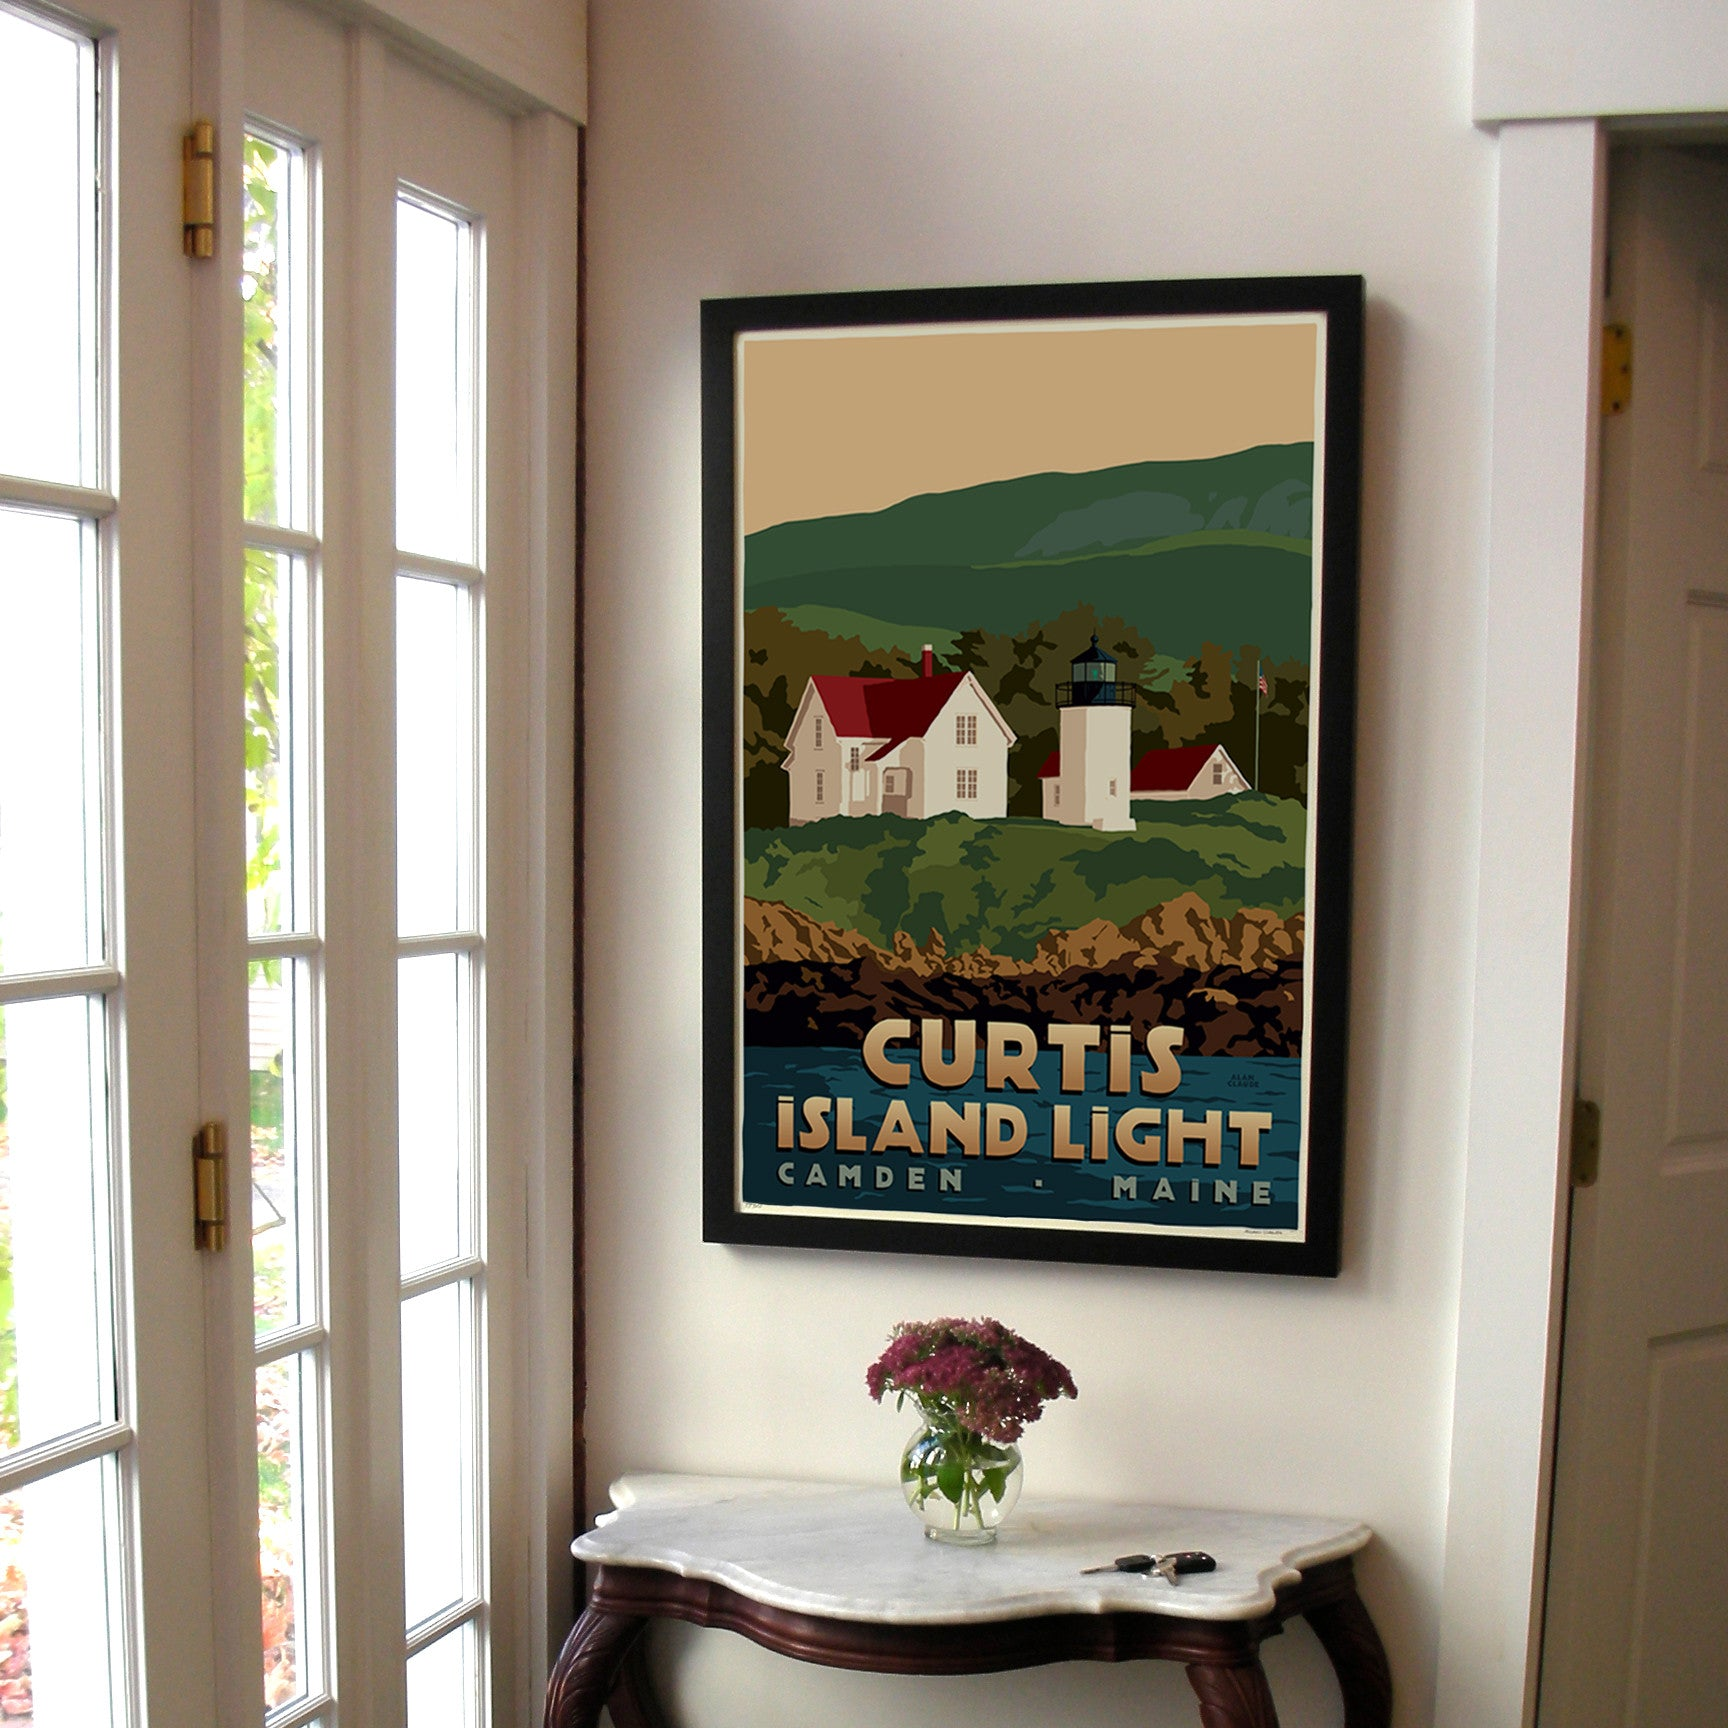 "Curtis Island Light Art Print 24"" x 36"" Framed Travel Poster - Maine"